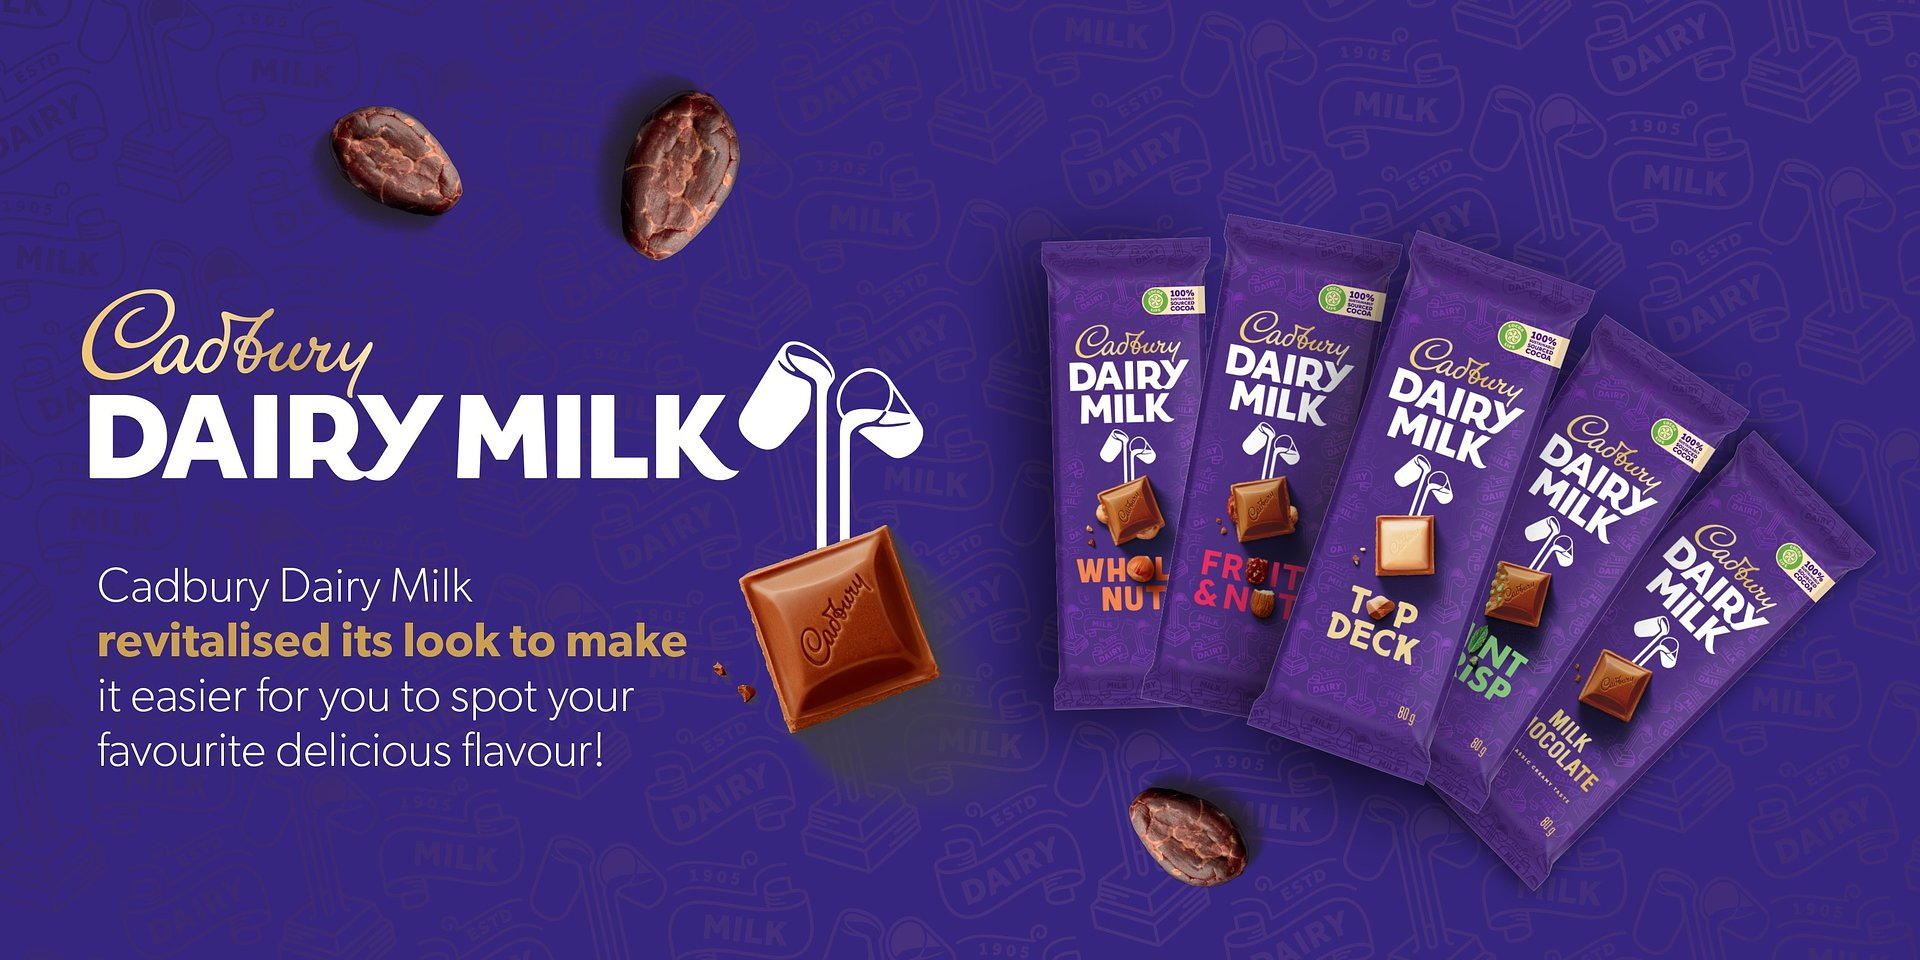 Cadbury Dairy Milk Celebrates Its New Look